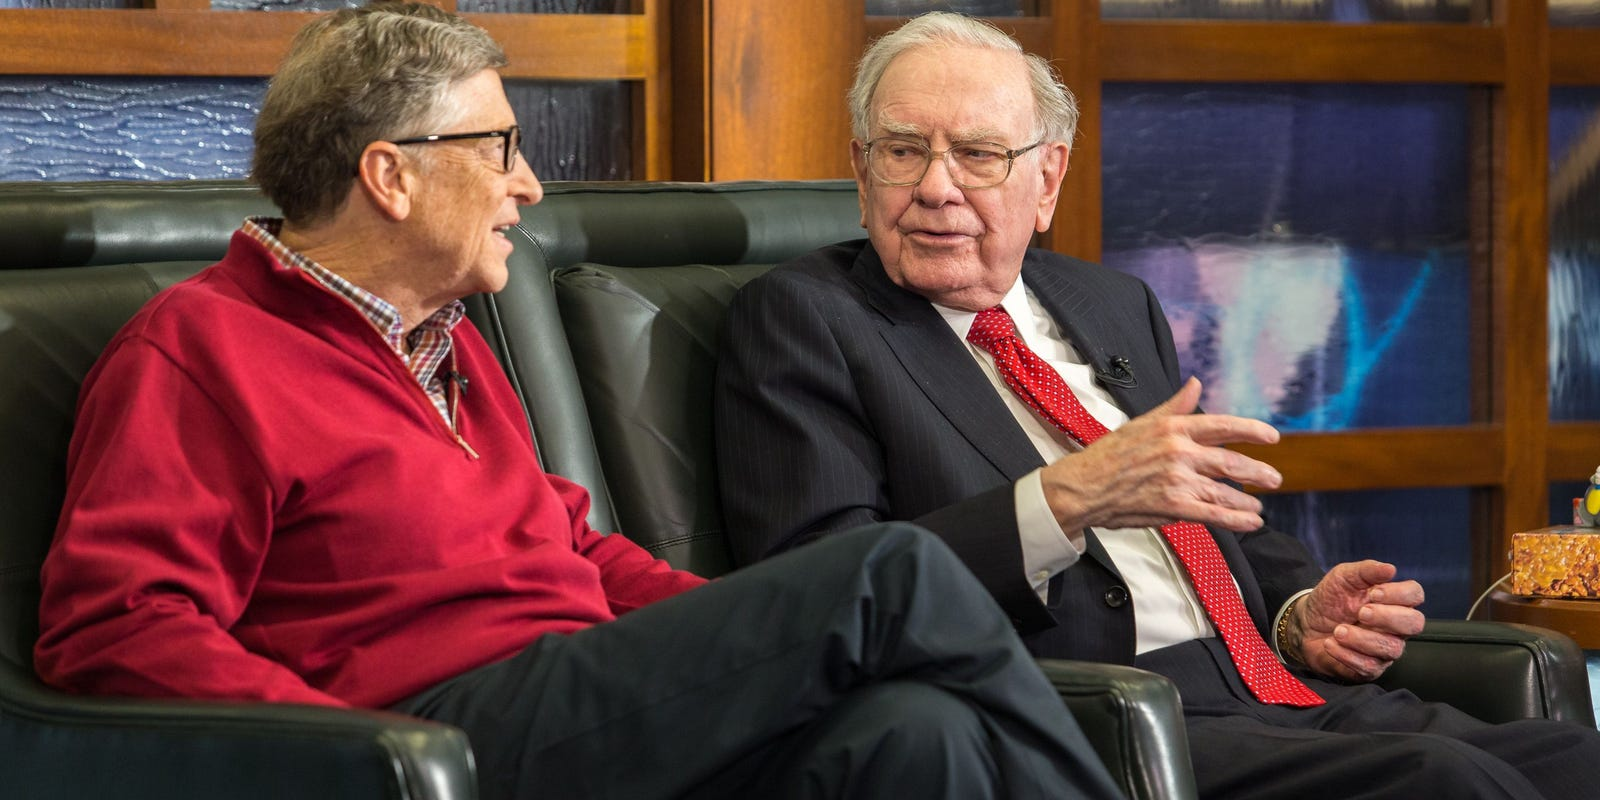 Bill Gates honors Warren Buffett's 90th birthday with funny cake baking video